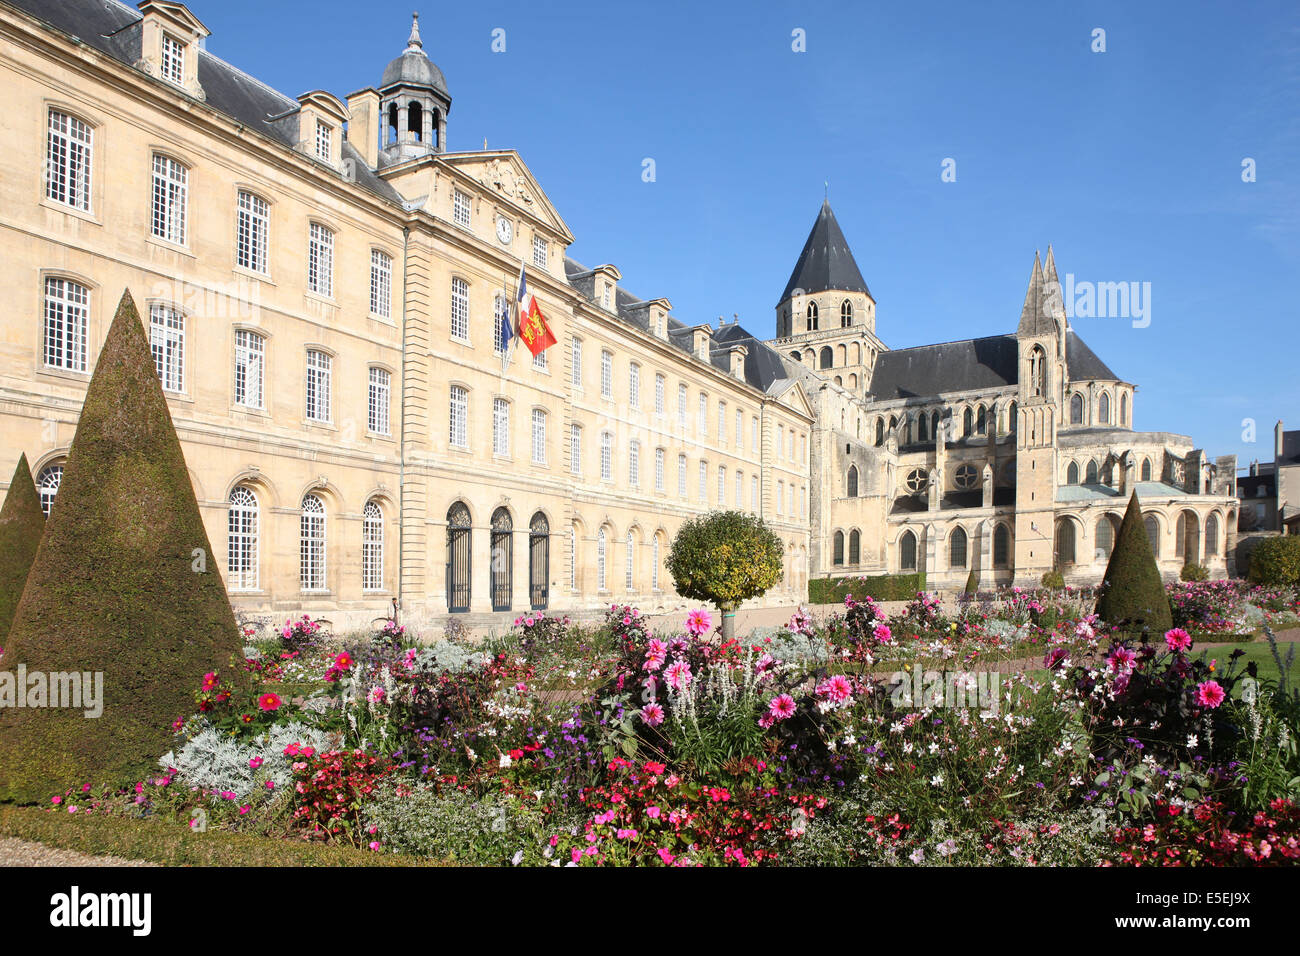 france normandie calvados caen abbaye aux hommes hotel de ville stock photo royalty free. Black Bedroom Furniture Sets. Home Design Ideas